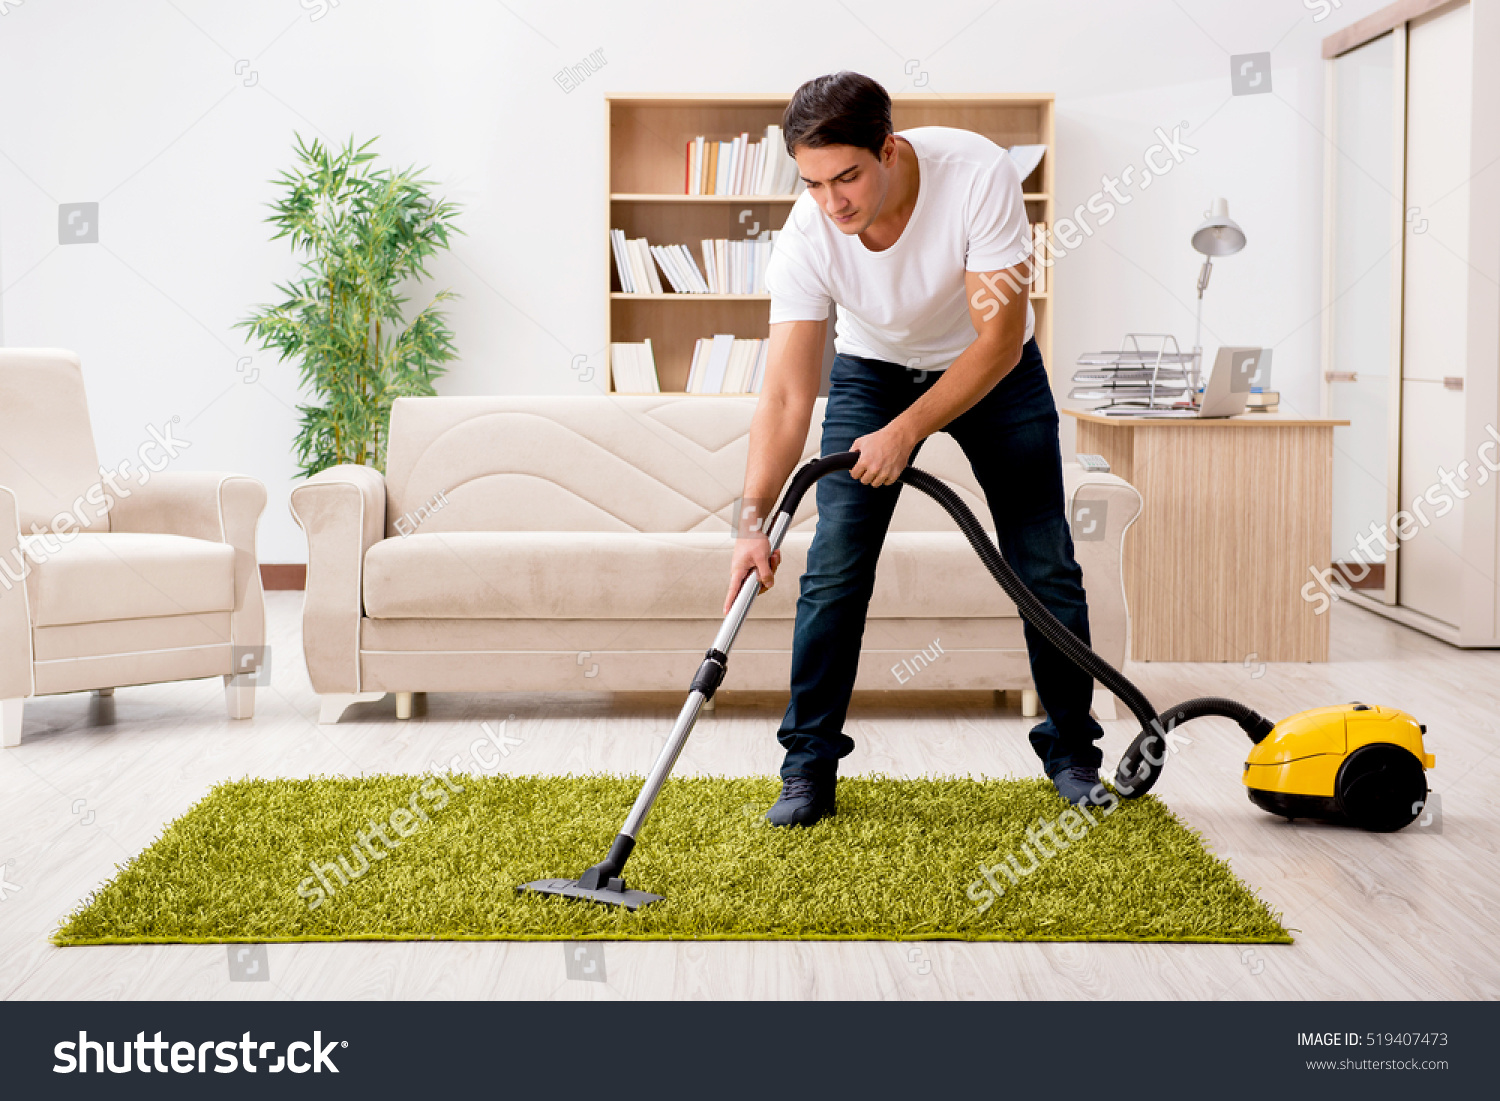 Man cleaning home vacuum cleaner stock photo 519407473 for House cleaning stock photos